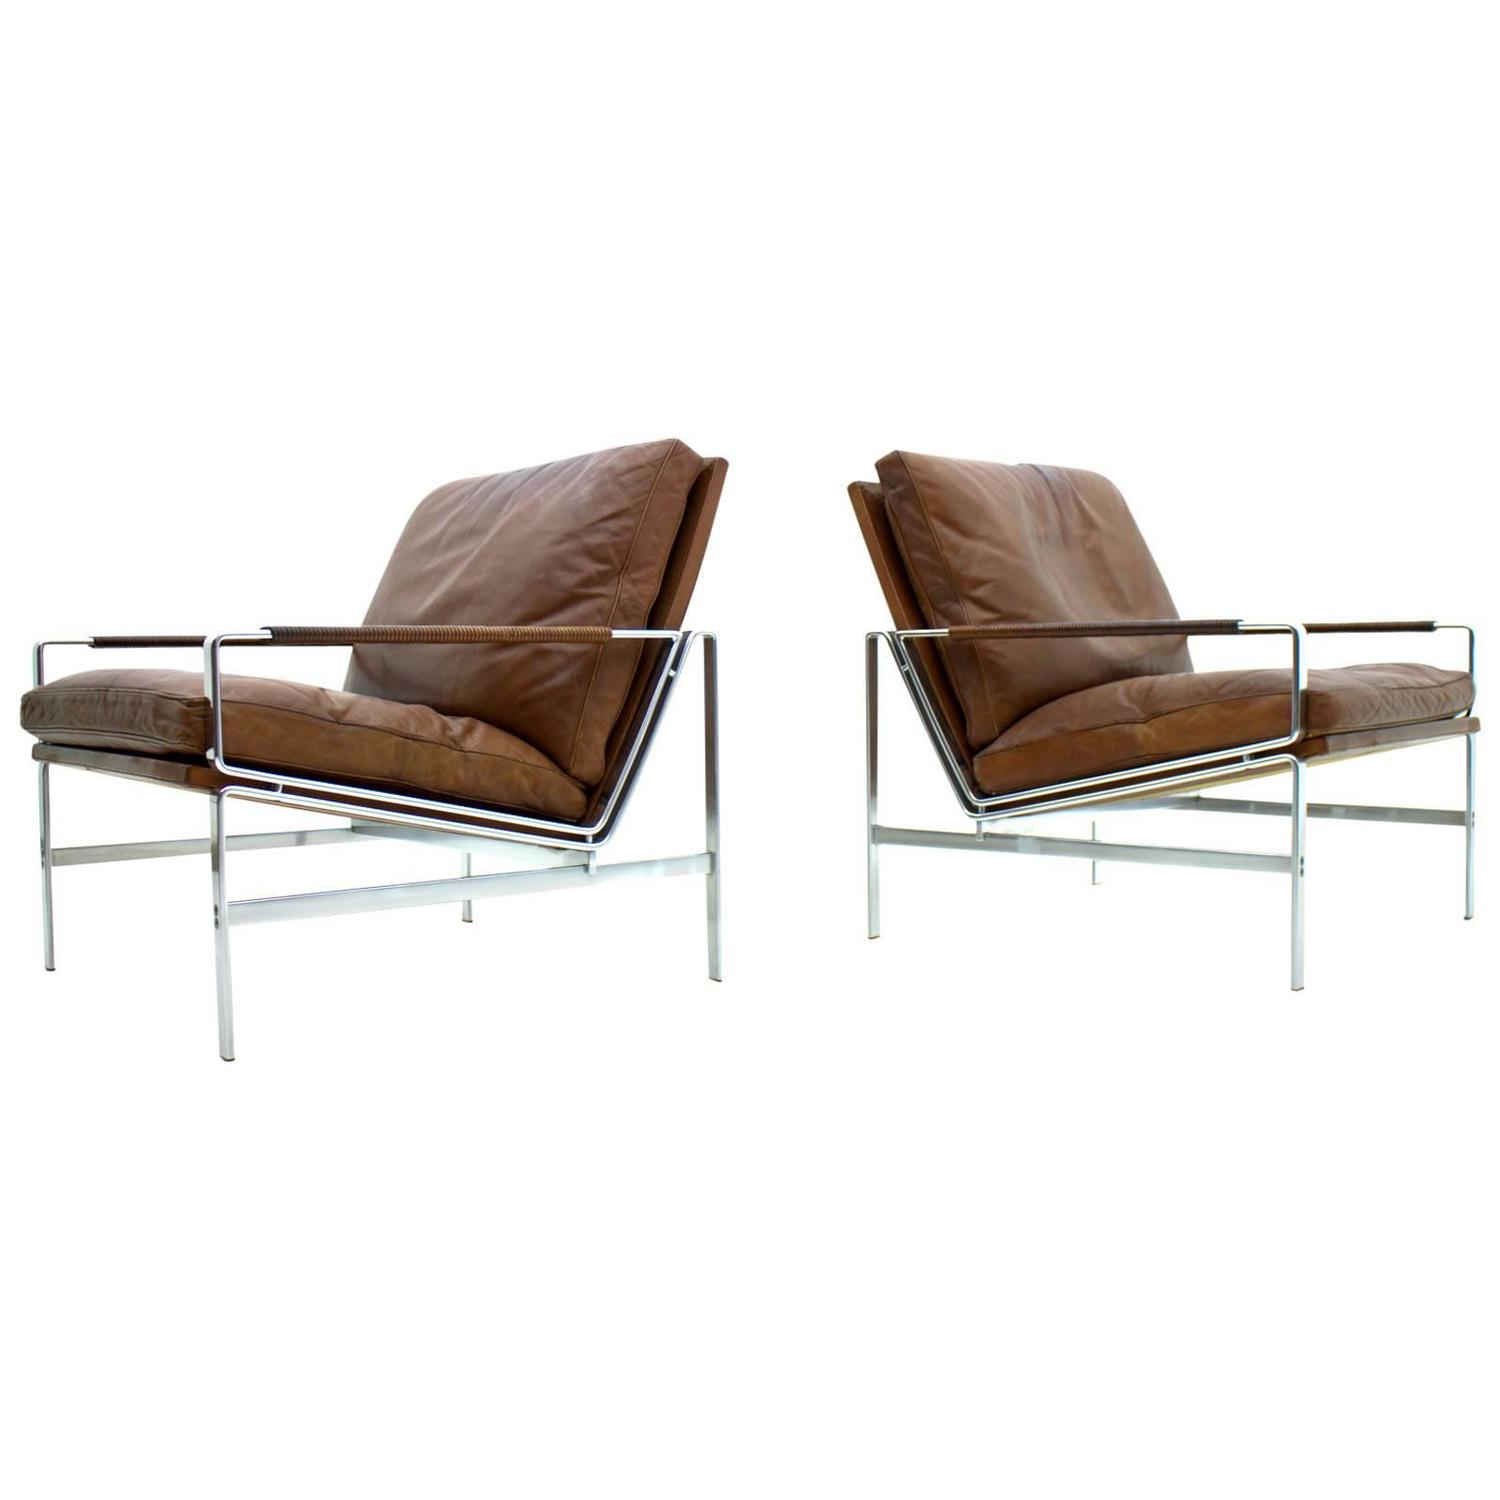 steel lounge chair vintage bamboo chairs pair of leather and by fabricius kastholm fk 6720 at 1stdibs